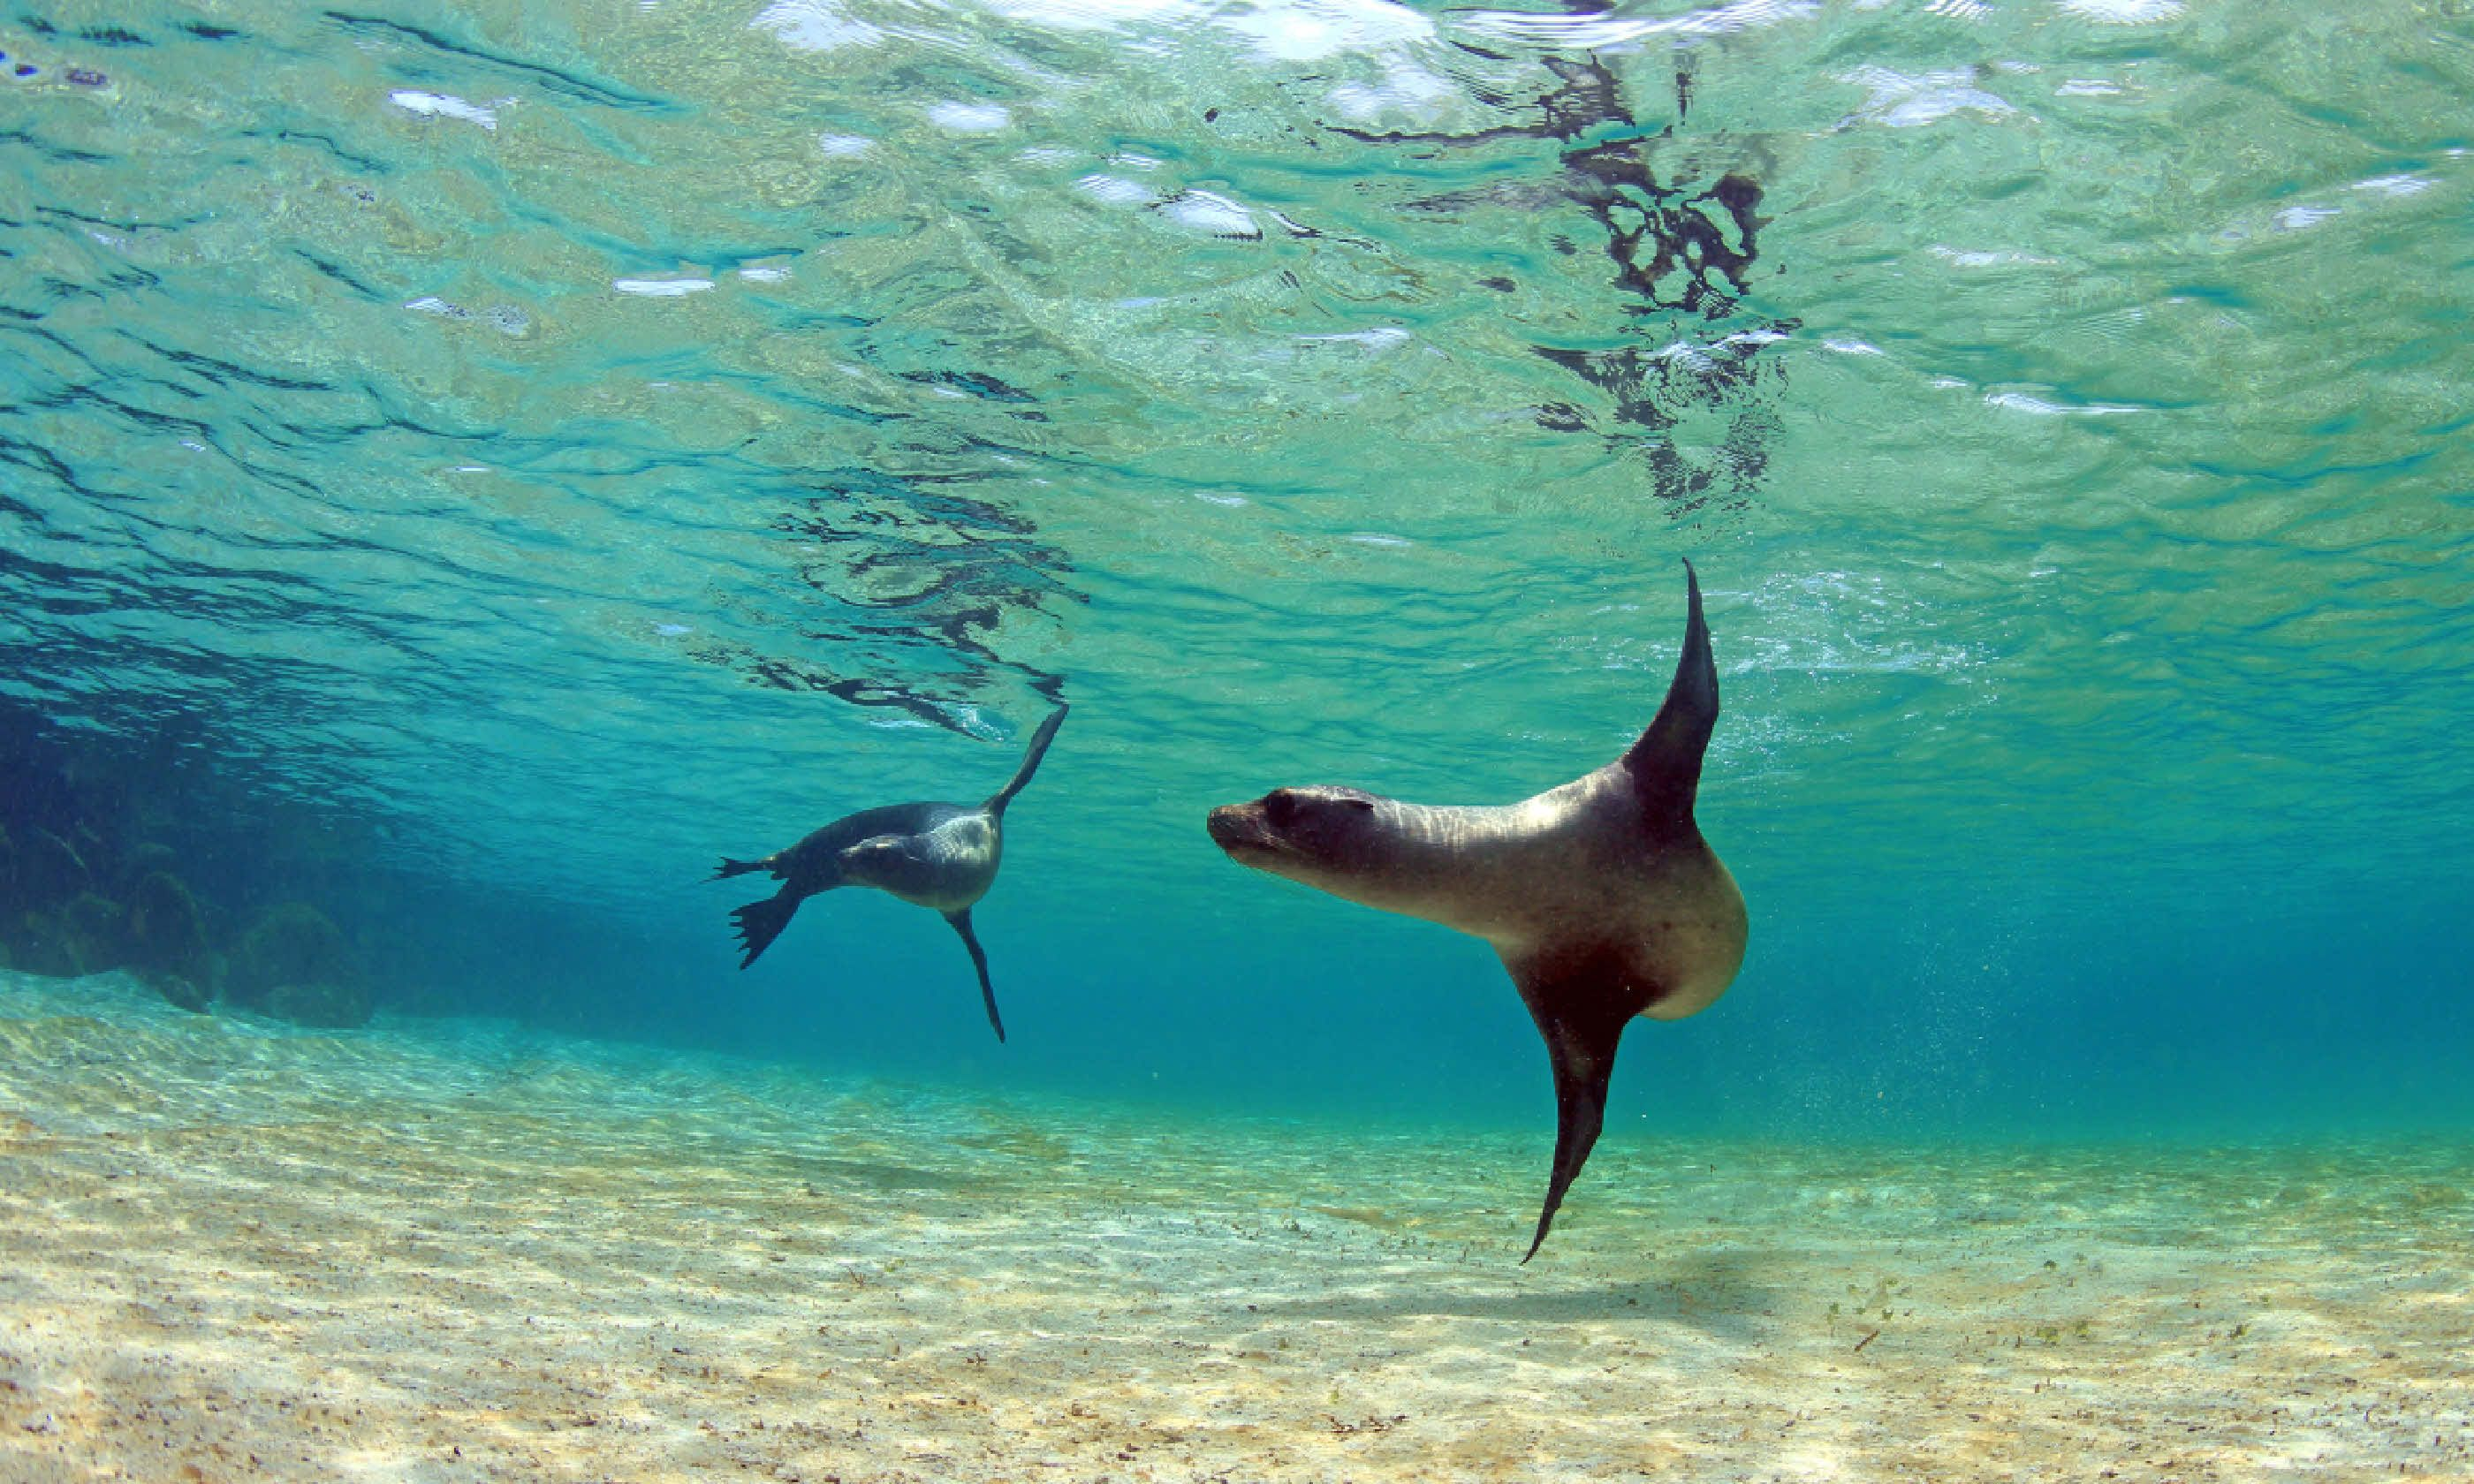 Sea lions in Galápagos Islands (Shutterstock)